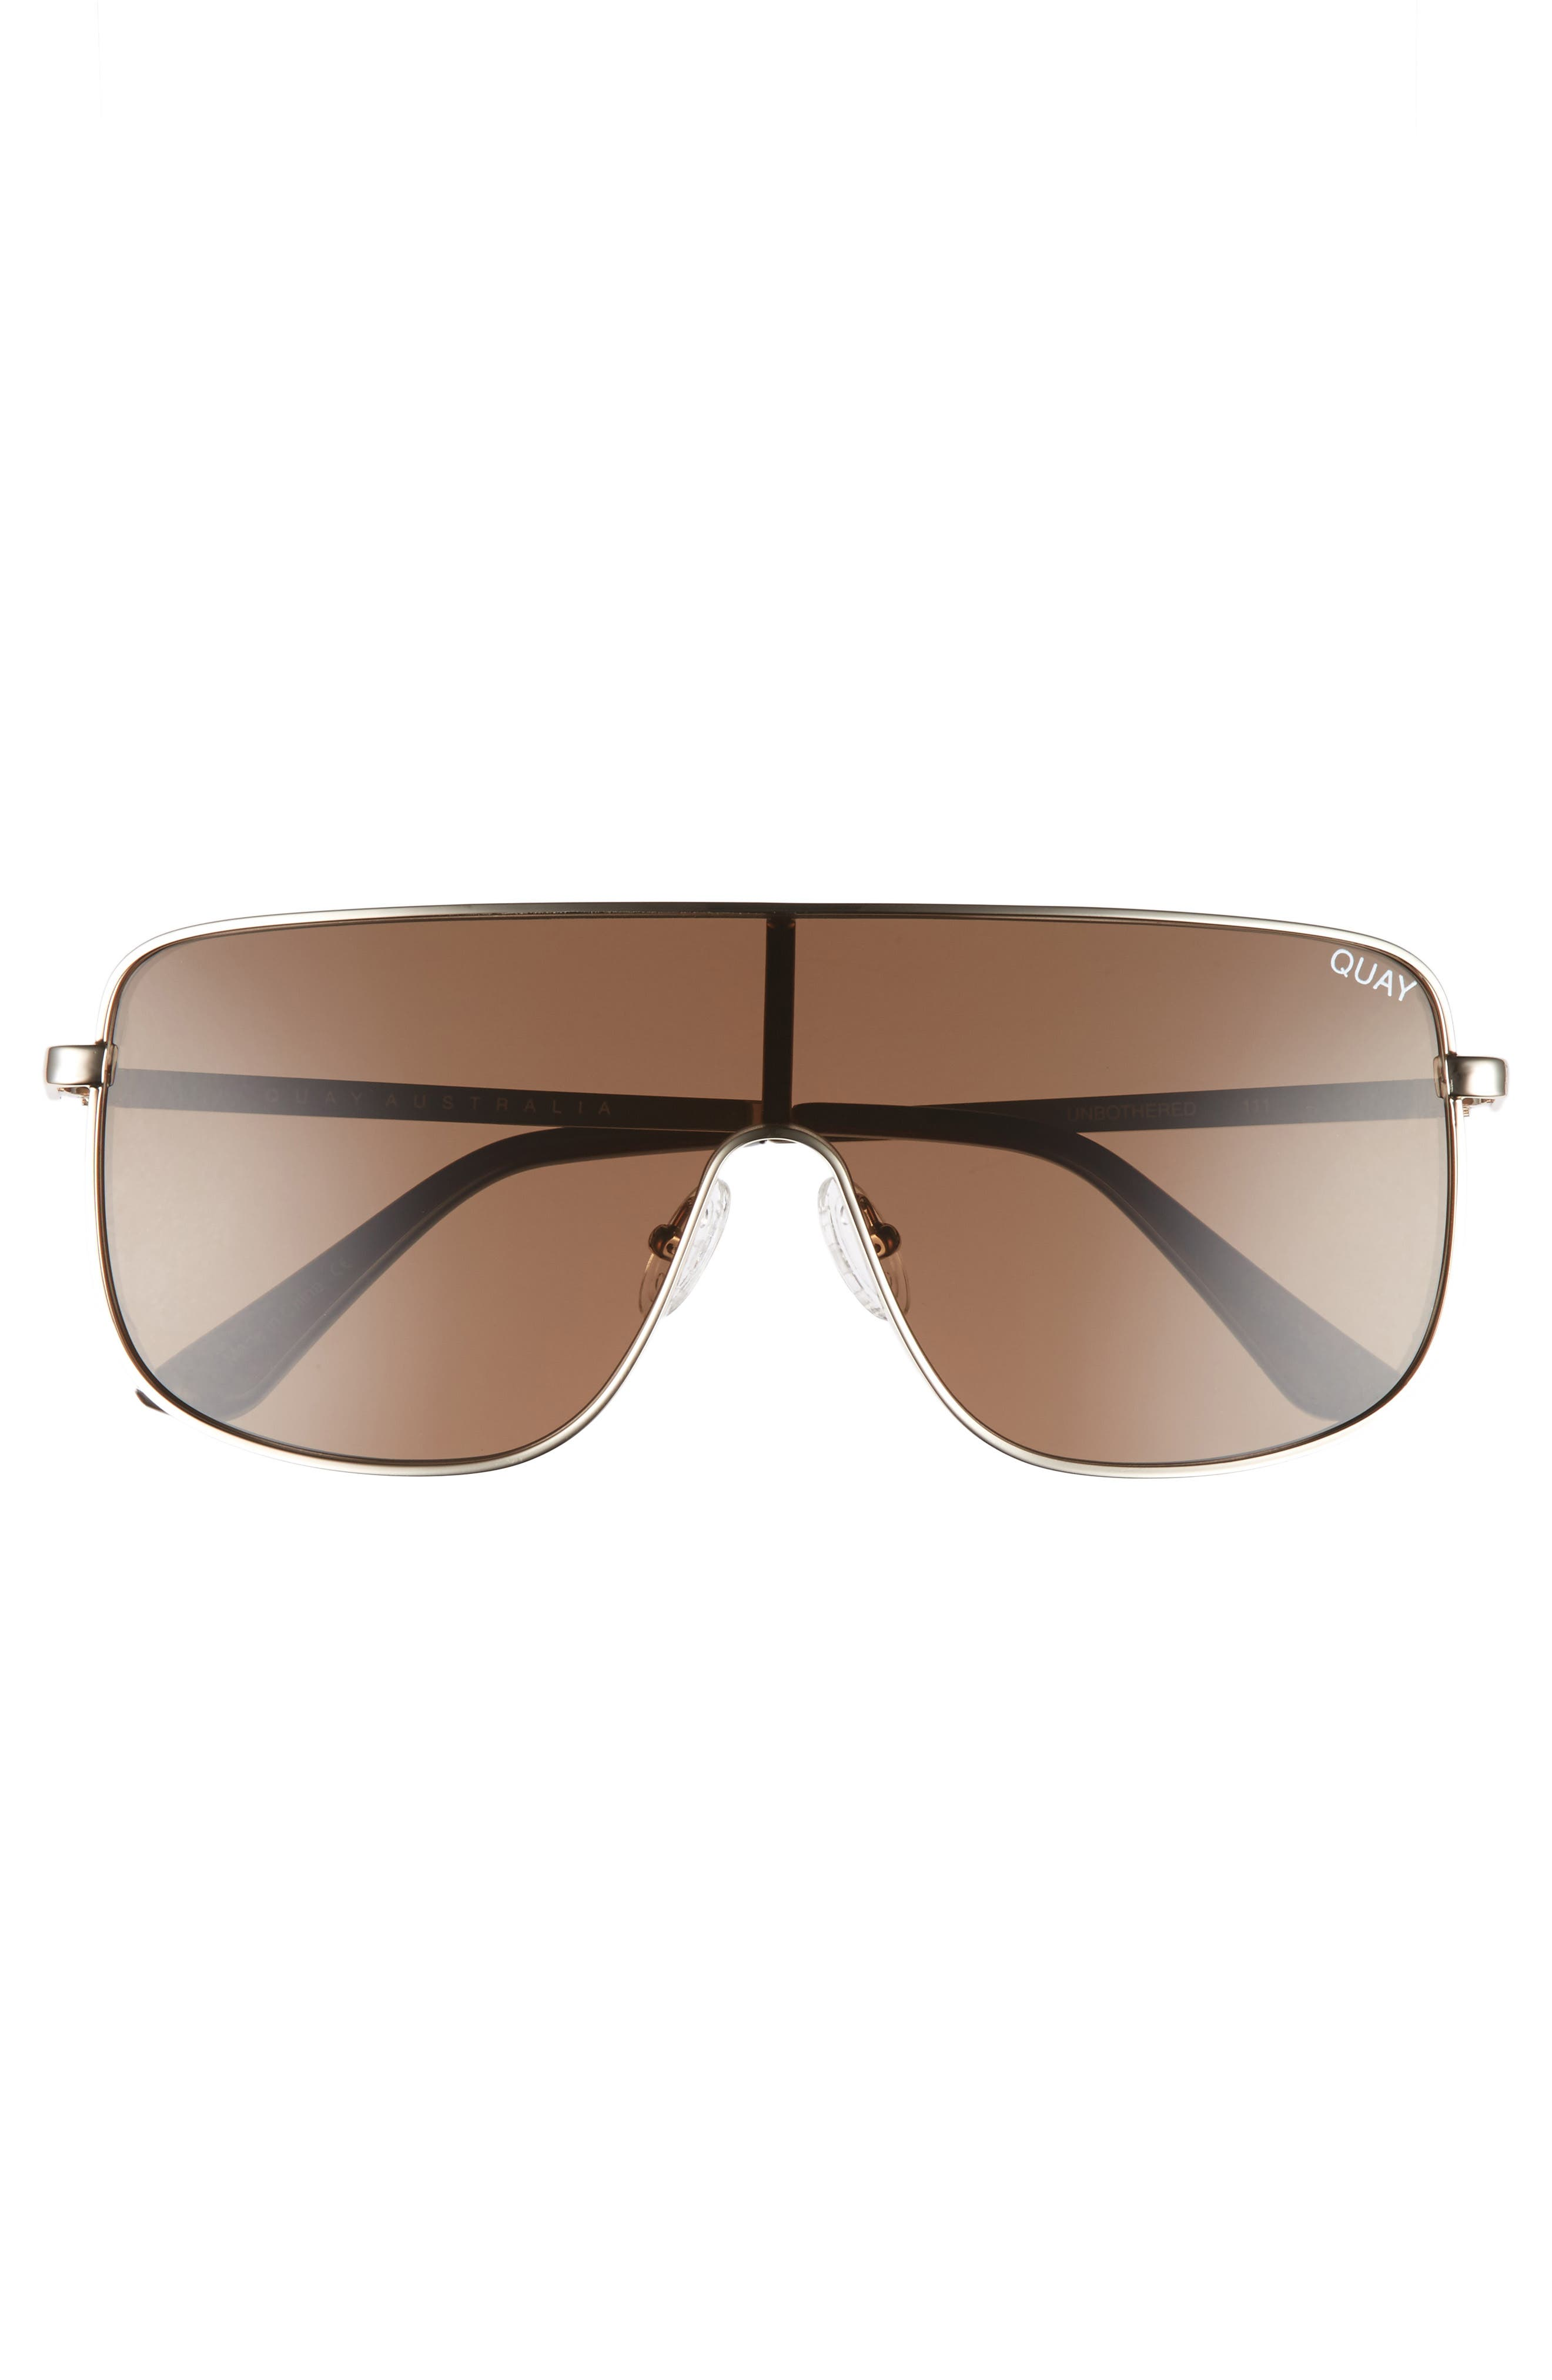 Unbothered 68mm Shield Sunglasses,                             Alternate thumbnail 6, color,